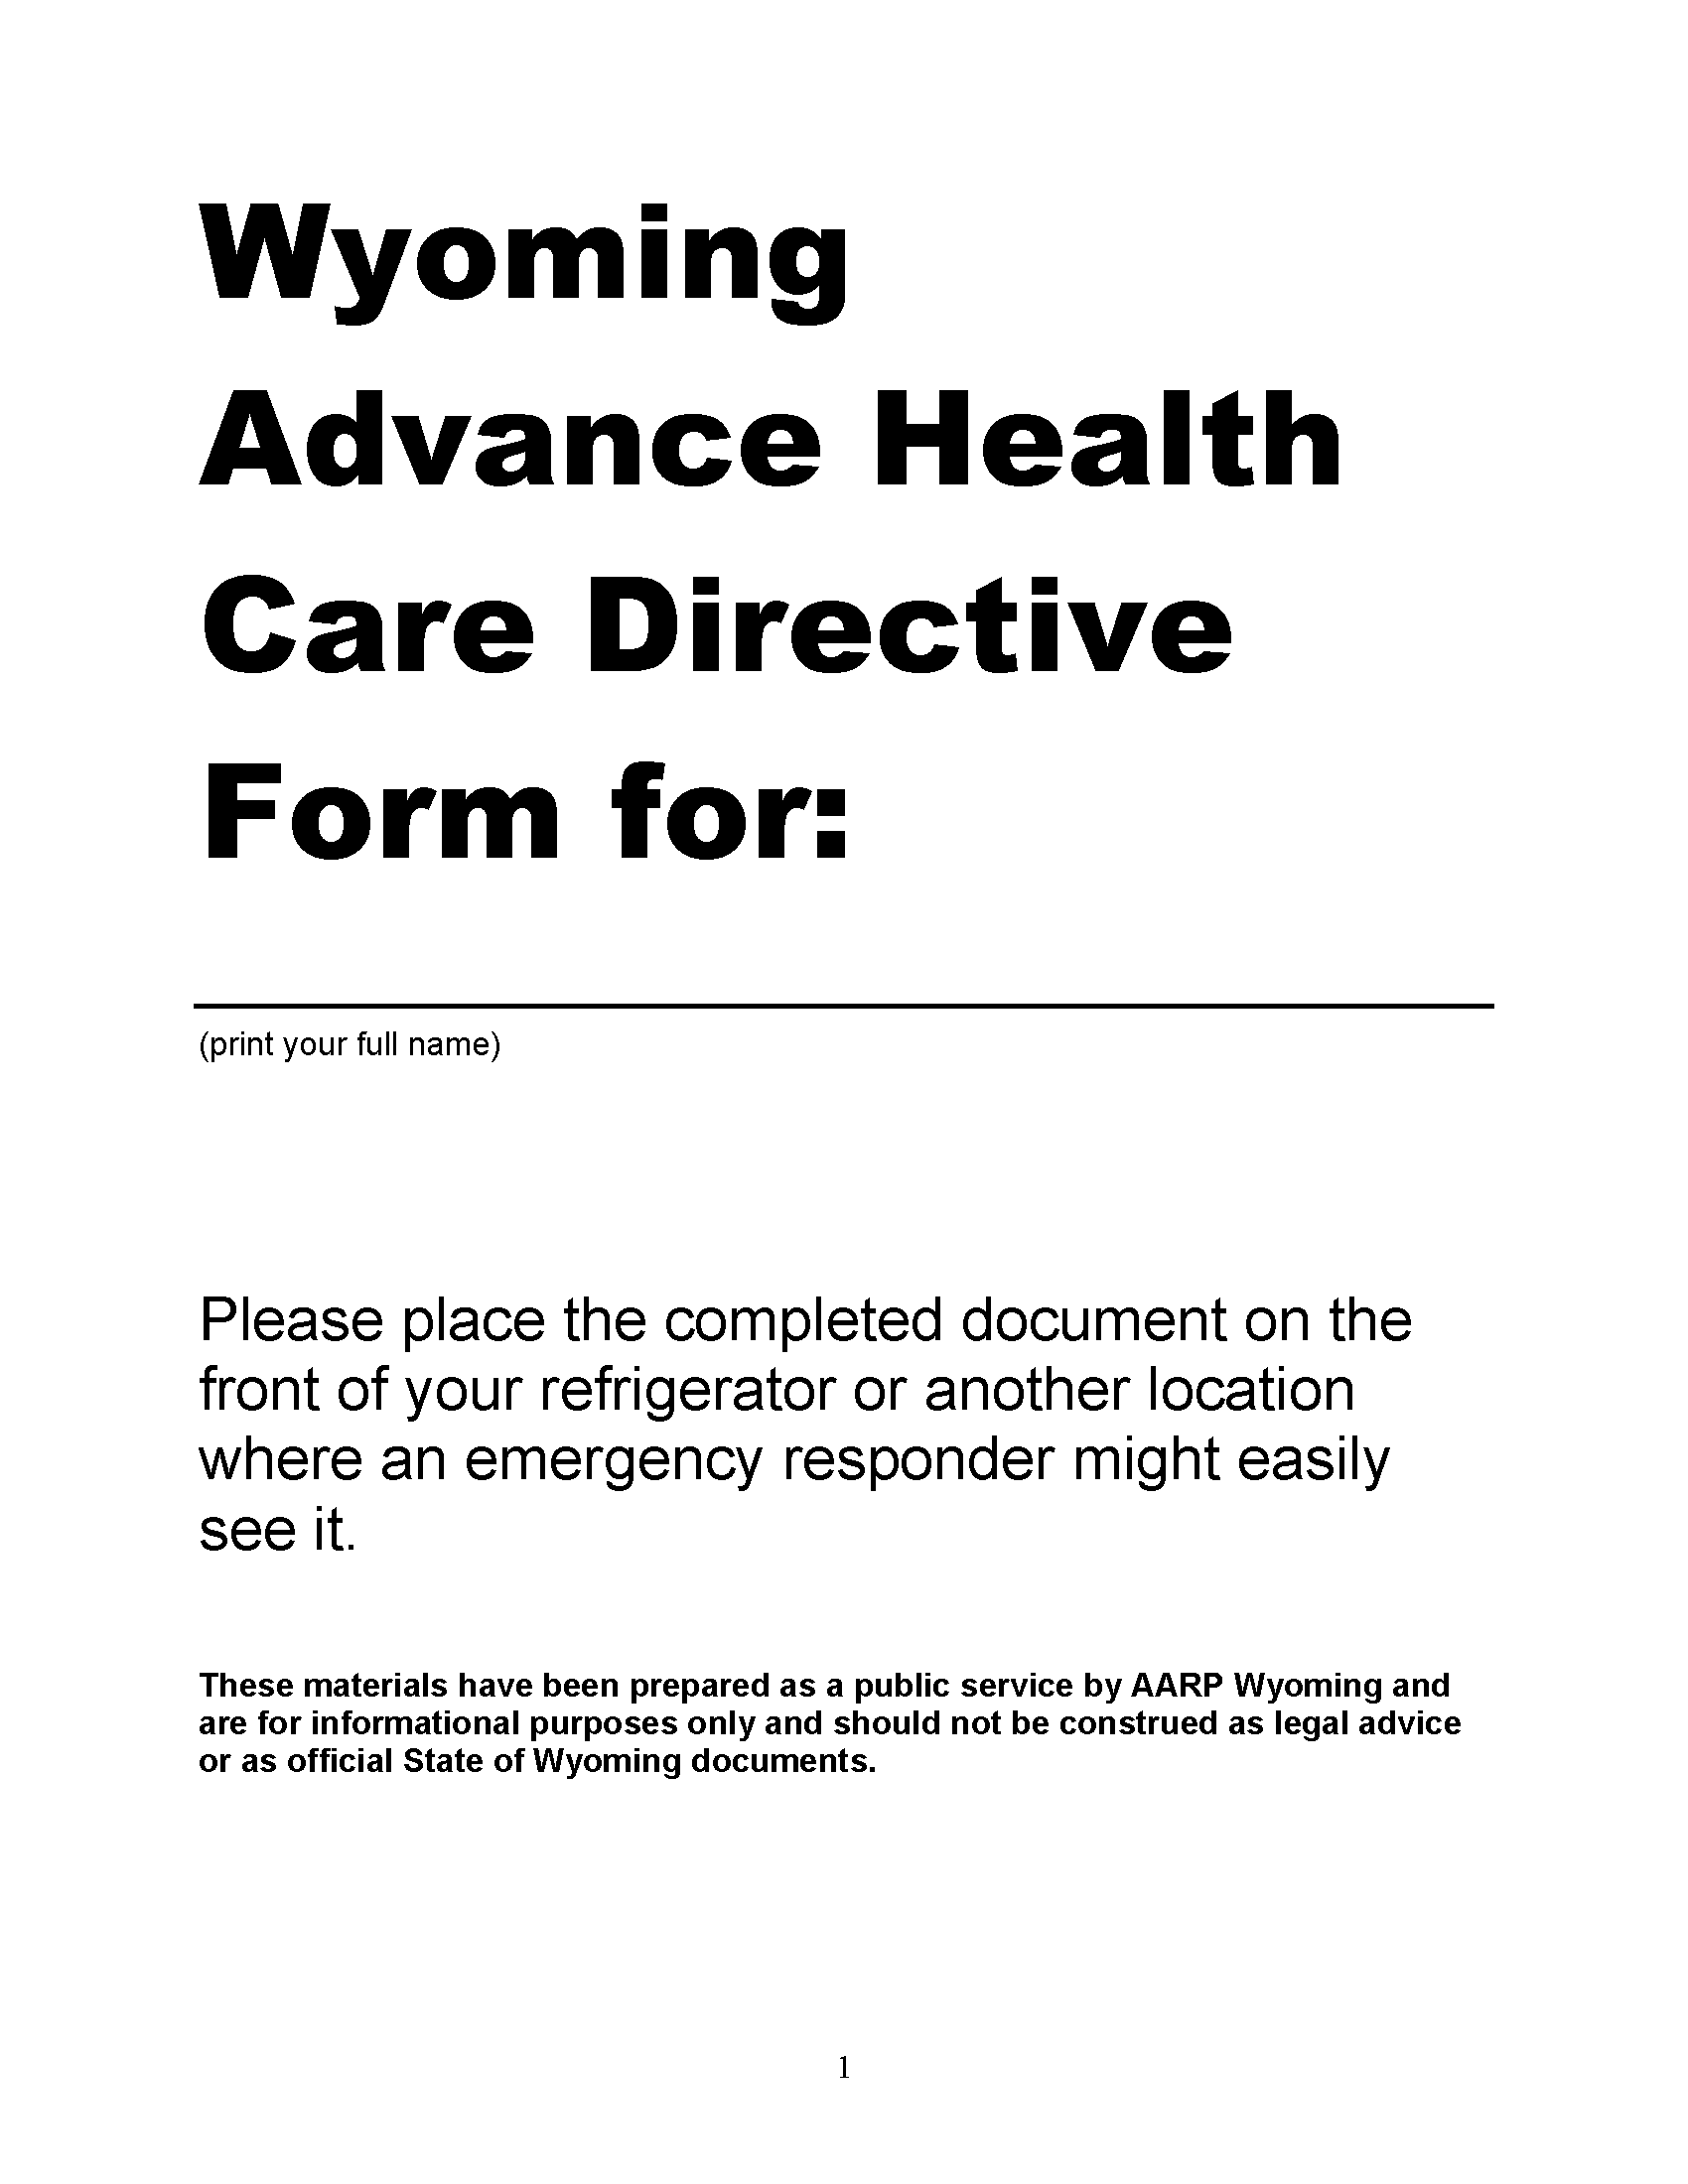 Wyoming Advance Directive For Health Care